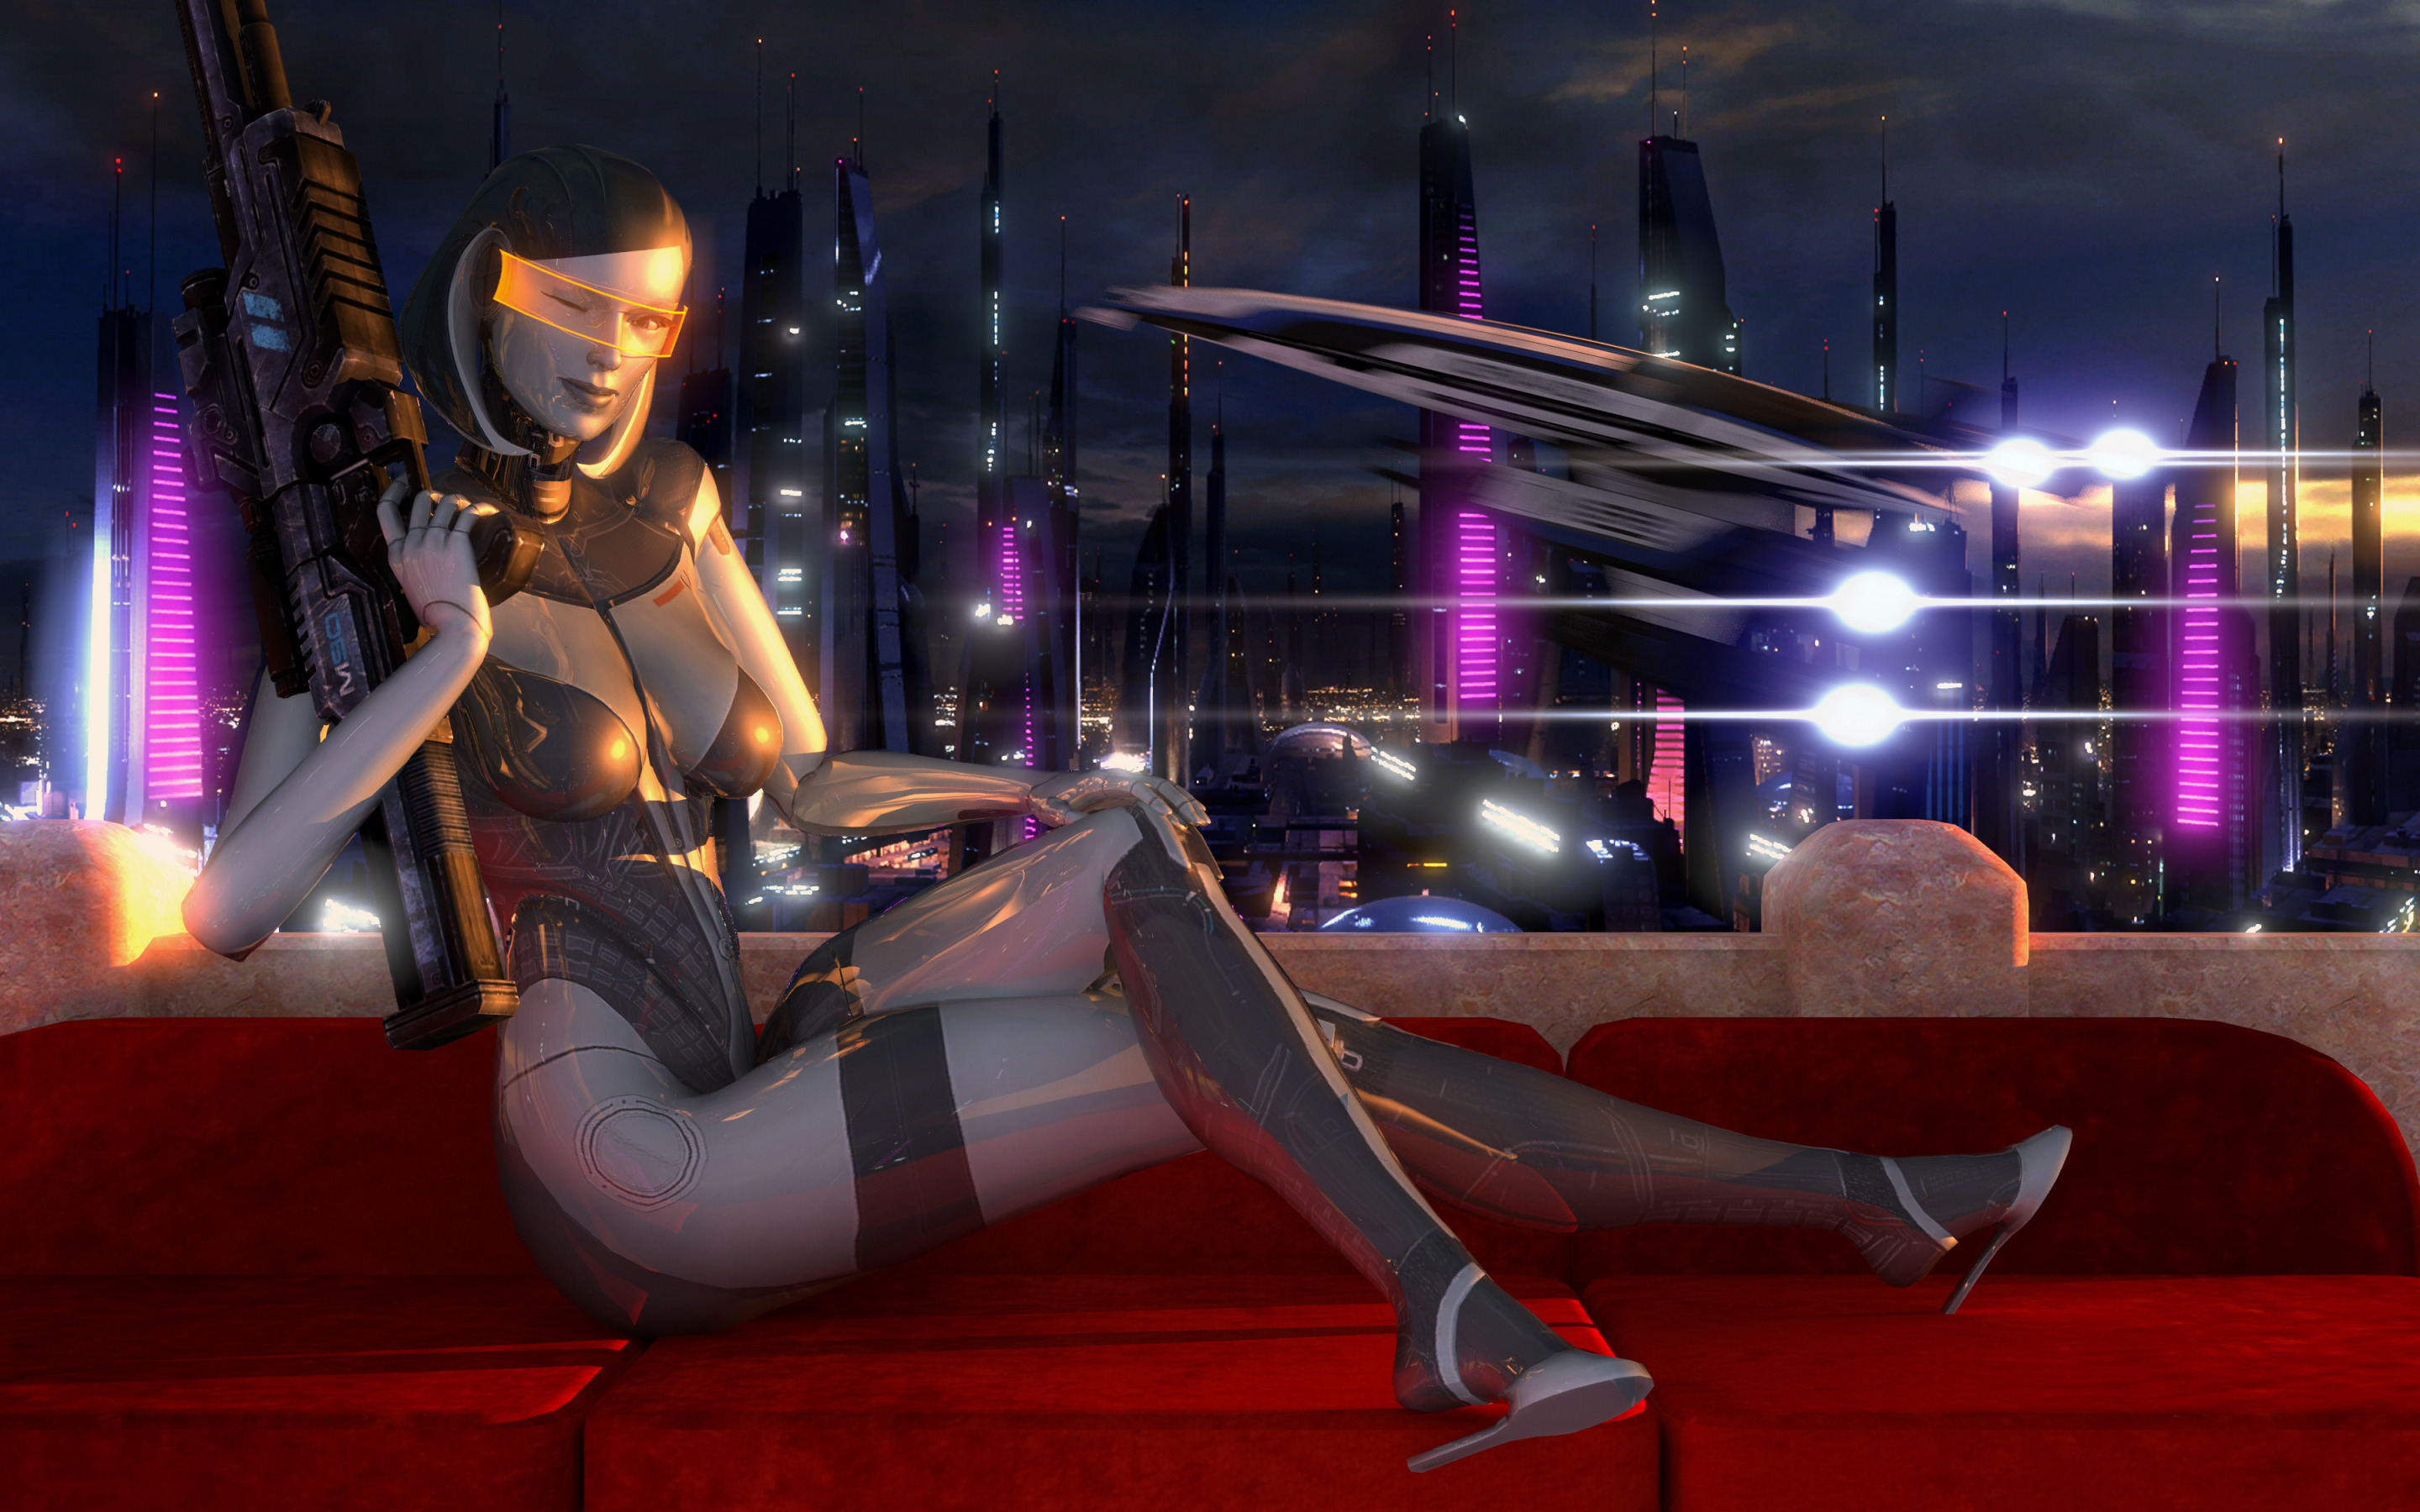 Mass effect robot porn sexy download